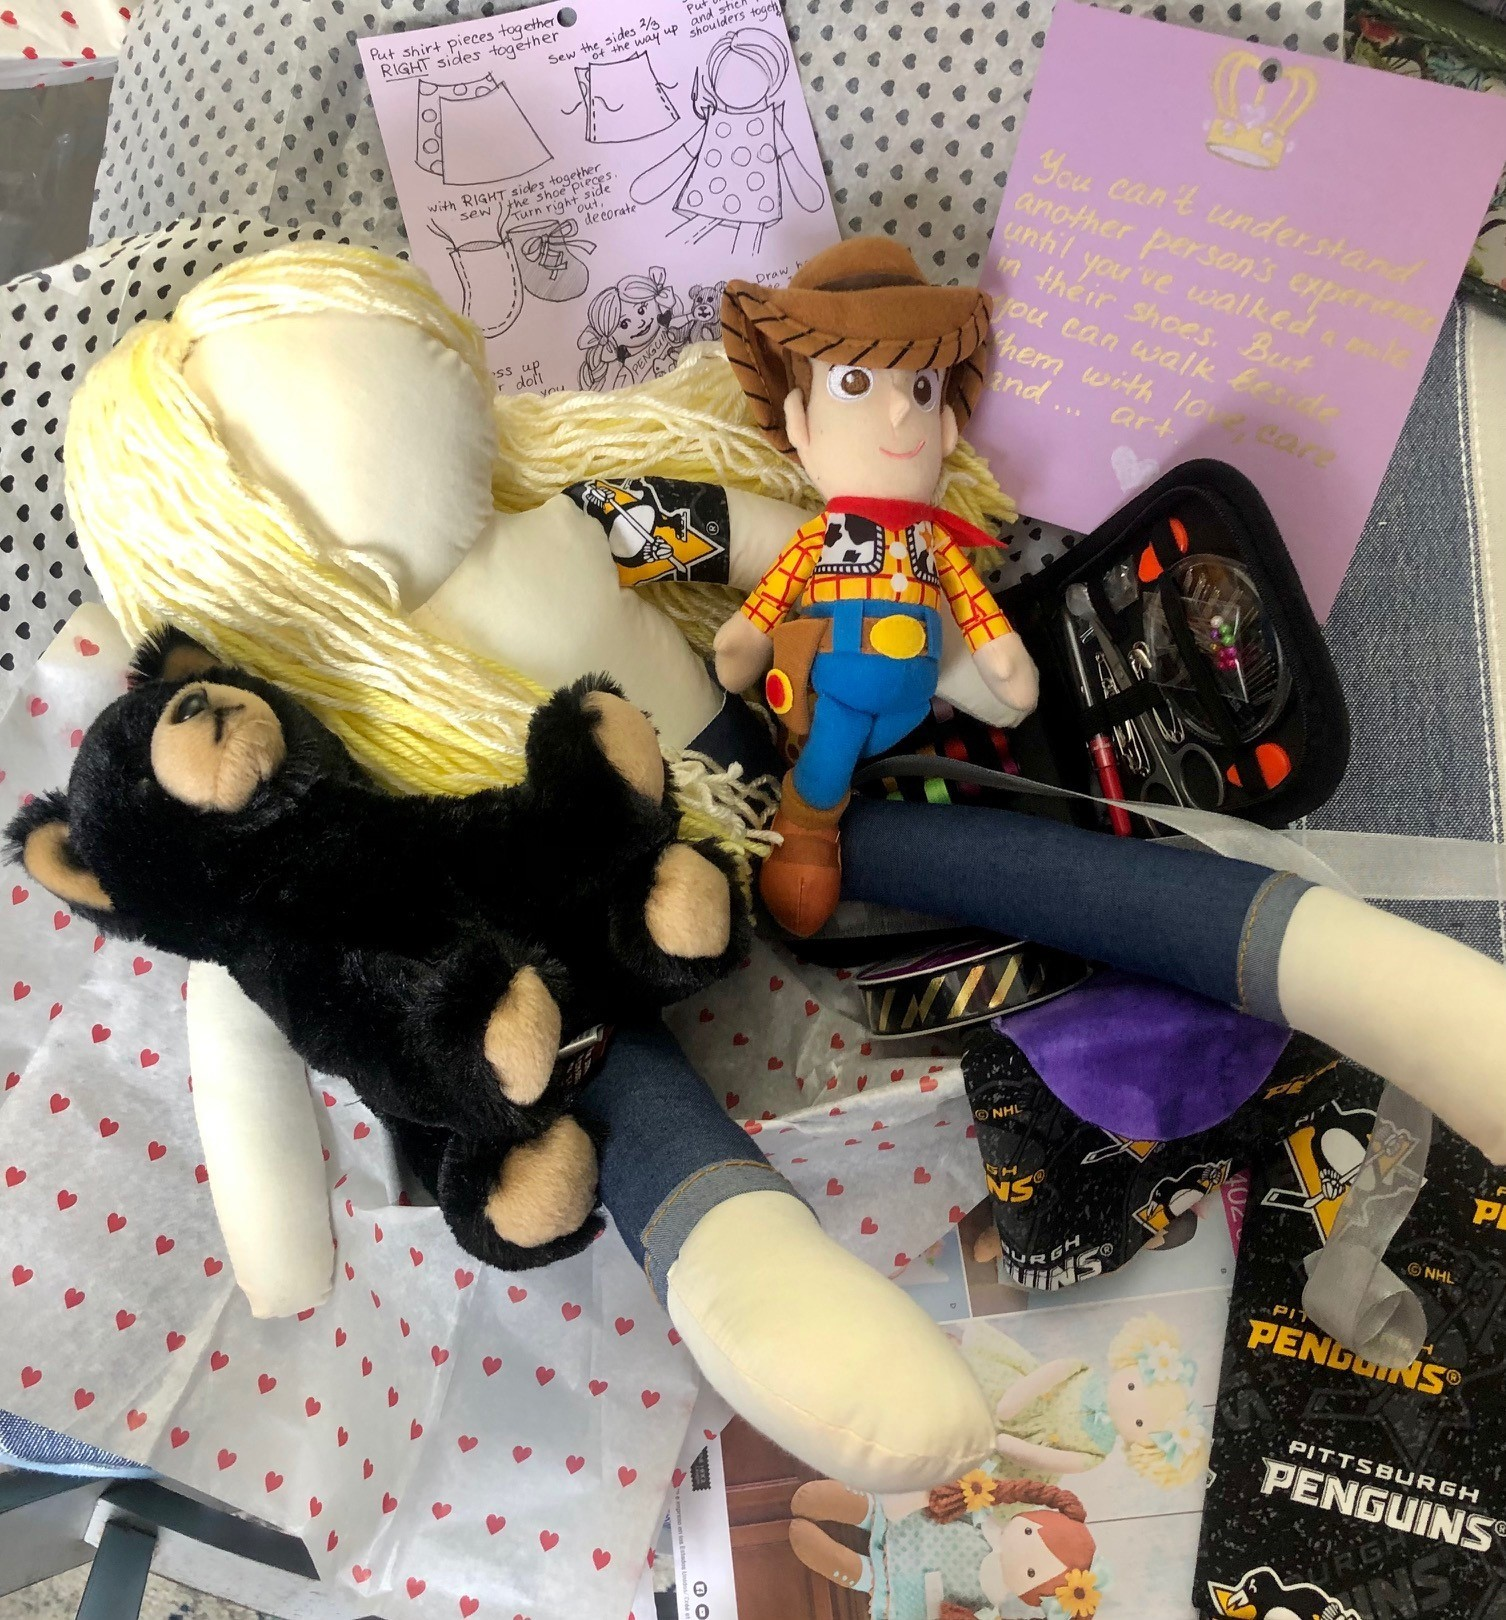 Amanda Doll With Personal Items